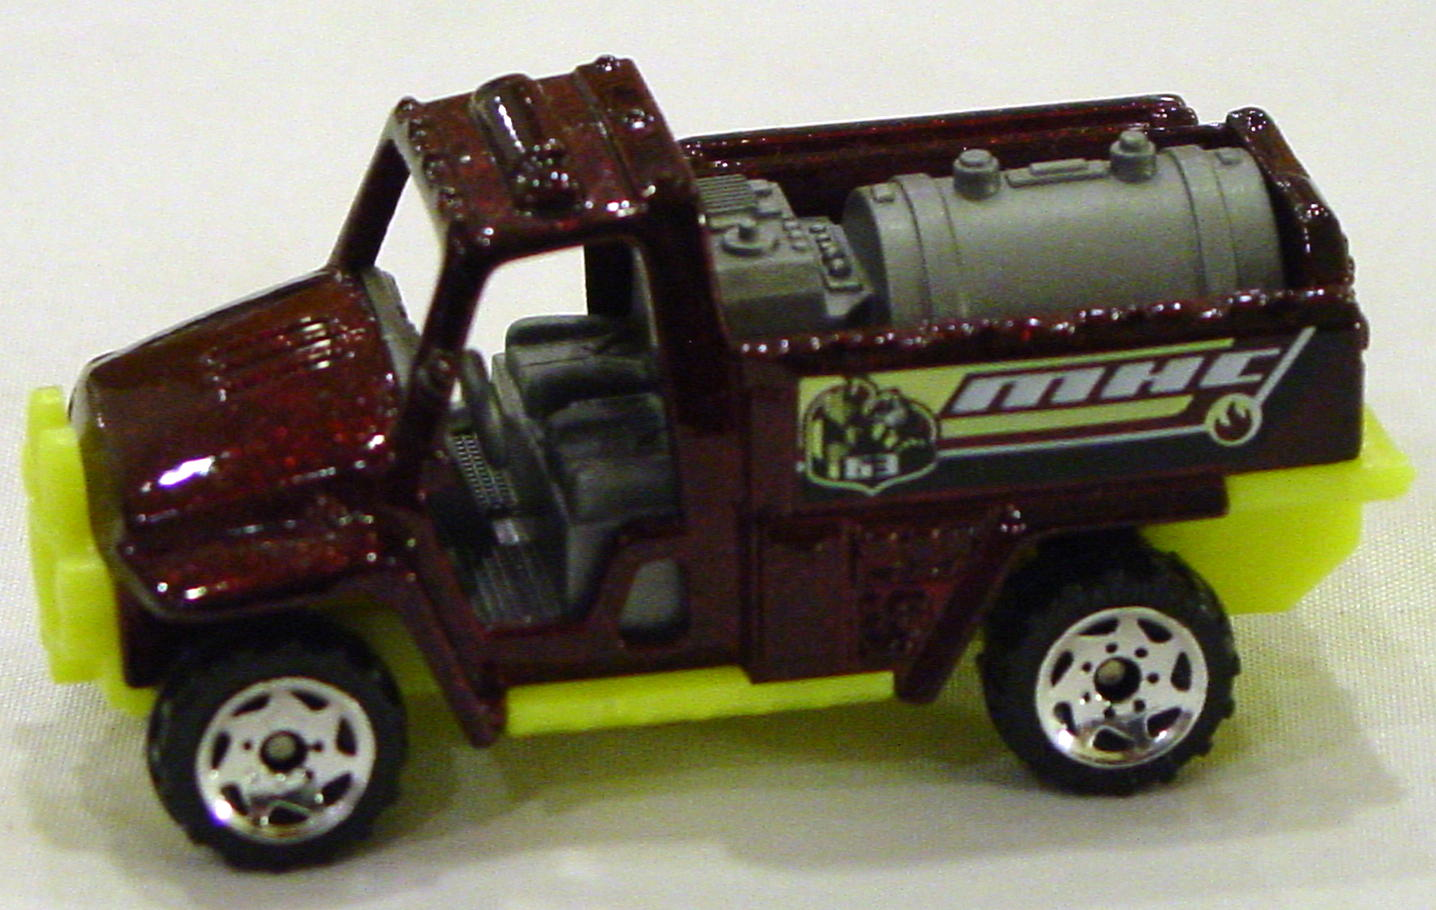 Offshore SuperFast 67 K 4 - 2003 63 Foam Fire Truck dark Maroon MHC63 made in China